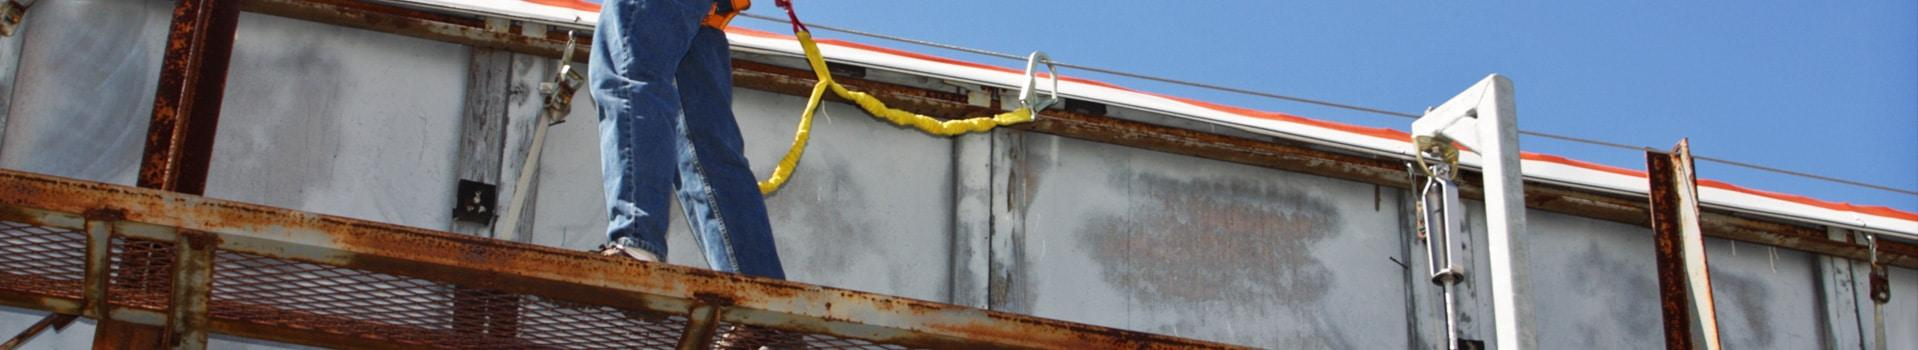 billboard fall protection systems